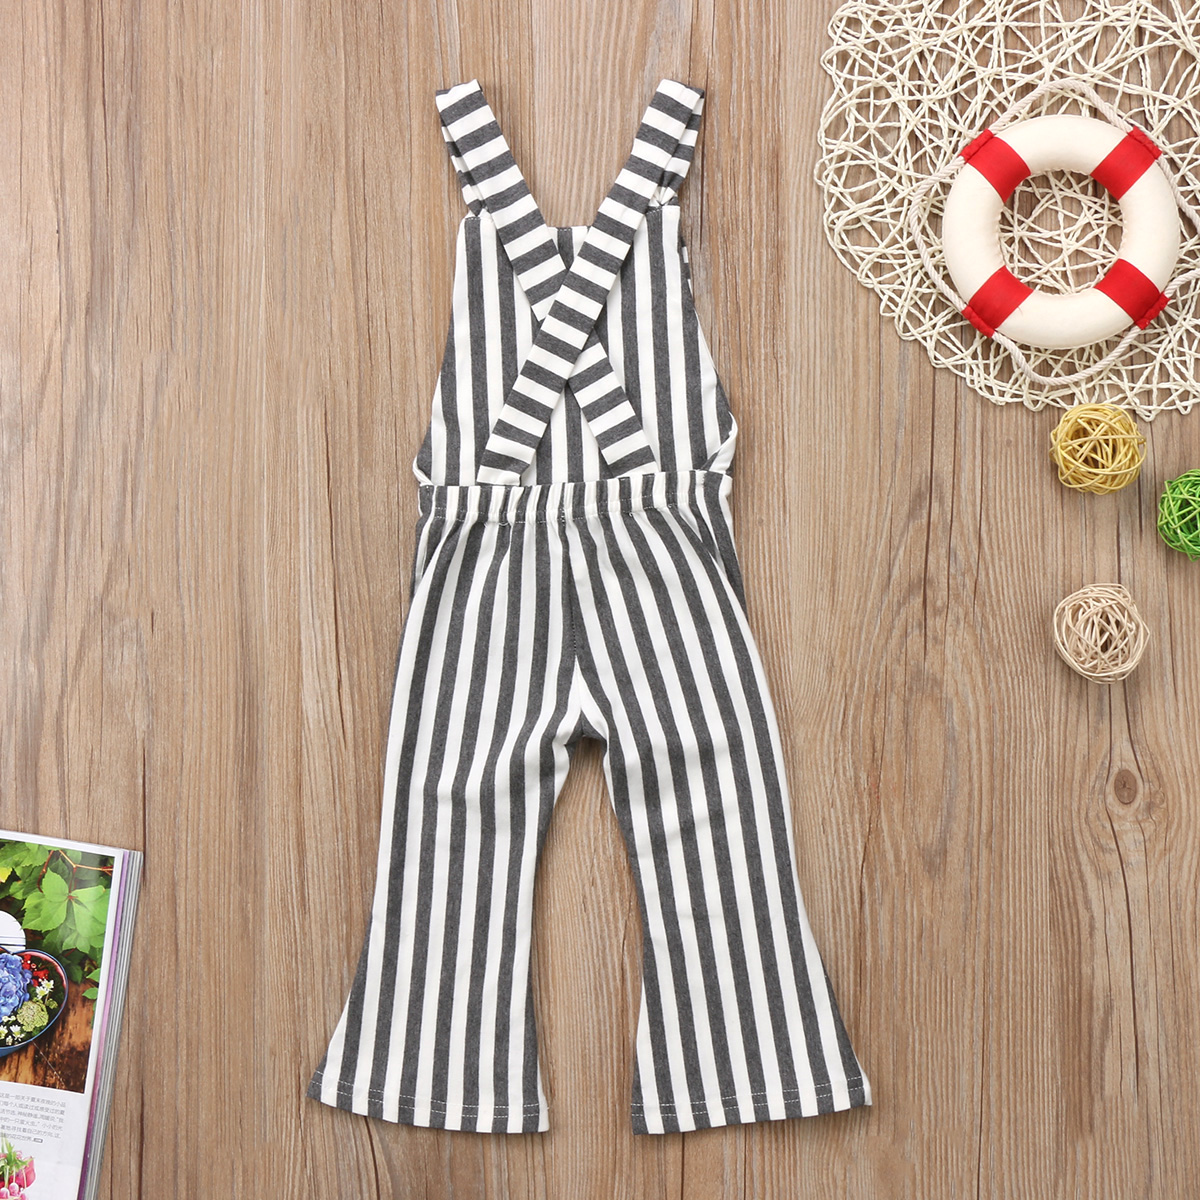 2f8d8e2a95 Toddler Kids Baby Girl Stripe Brace Pants Overalls Long Loose Flare Pants  Backless Overall Jumper Girls Outfit-in Pants from Mother   Kids on  Aliexpress.com ...